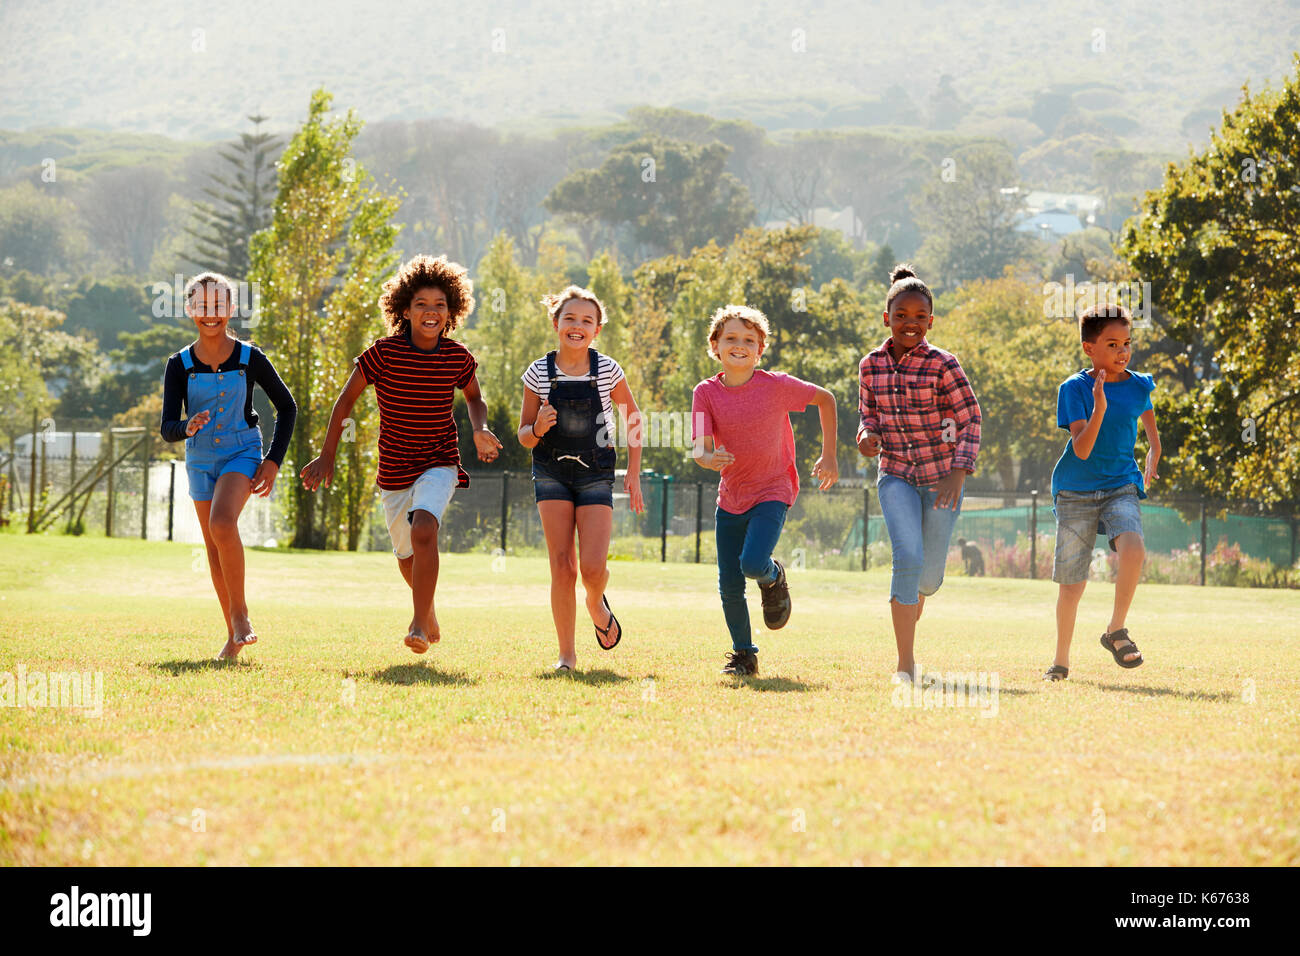 Six pre-teen friends running in a park, front view - Stock Image